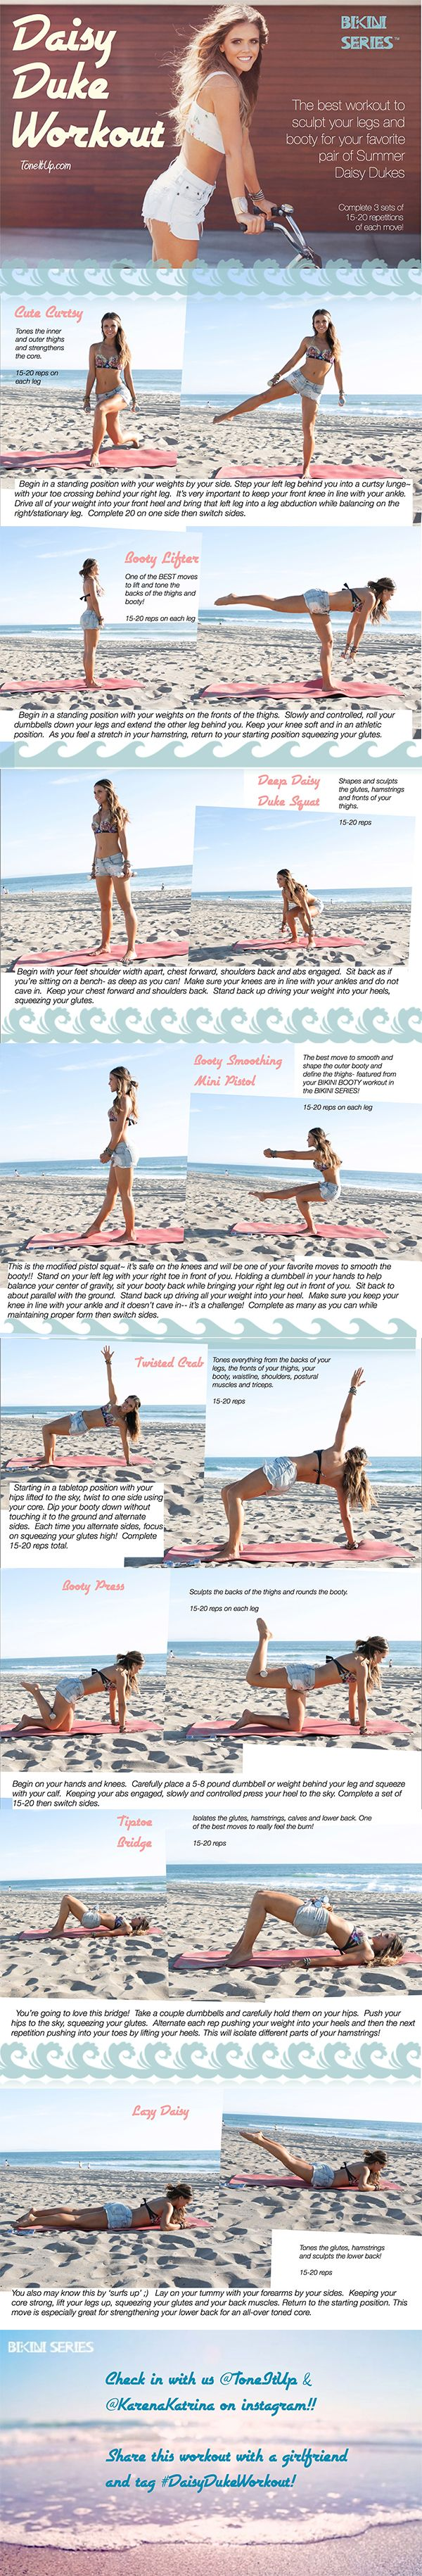 Your Daisy Dukes Exercise ☀ - http://www.awesomefitnessmodels.com/fitness-meals-and-workouts/your-daisy-dukes-exercise-%e2%98%80.html